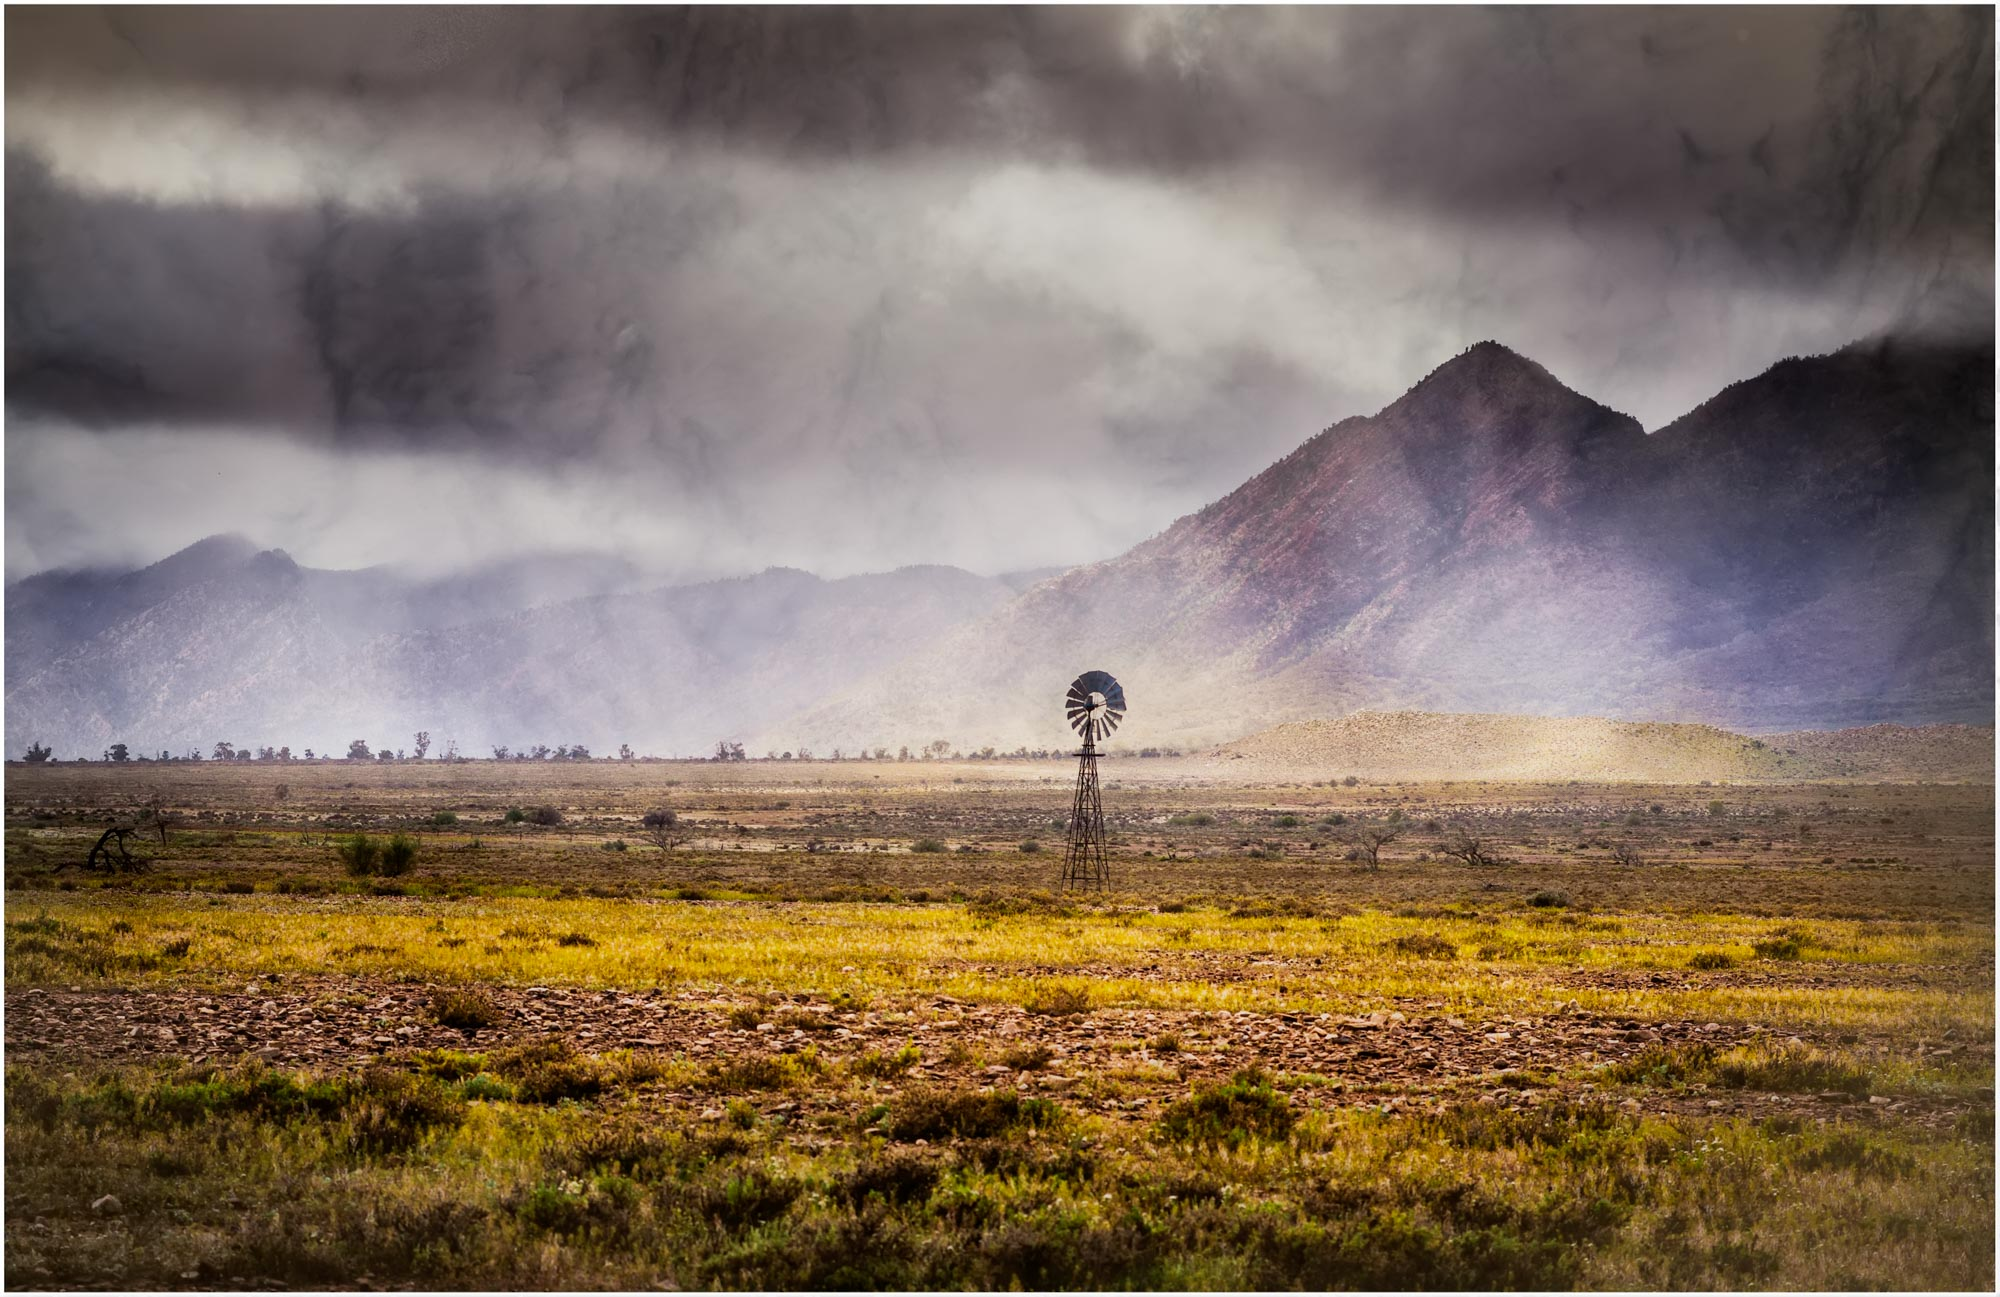 Landscapes 22 Photography by Keith Seidel.JPG